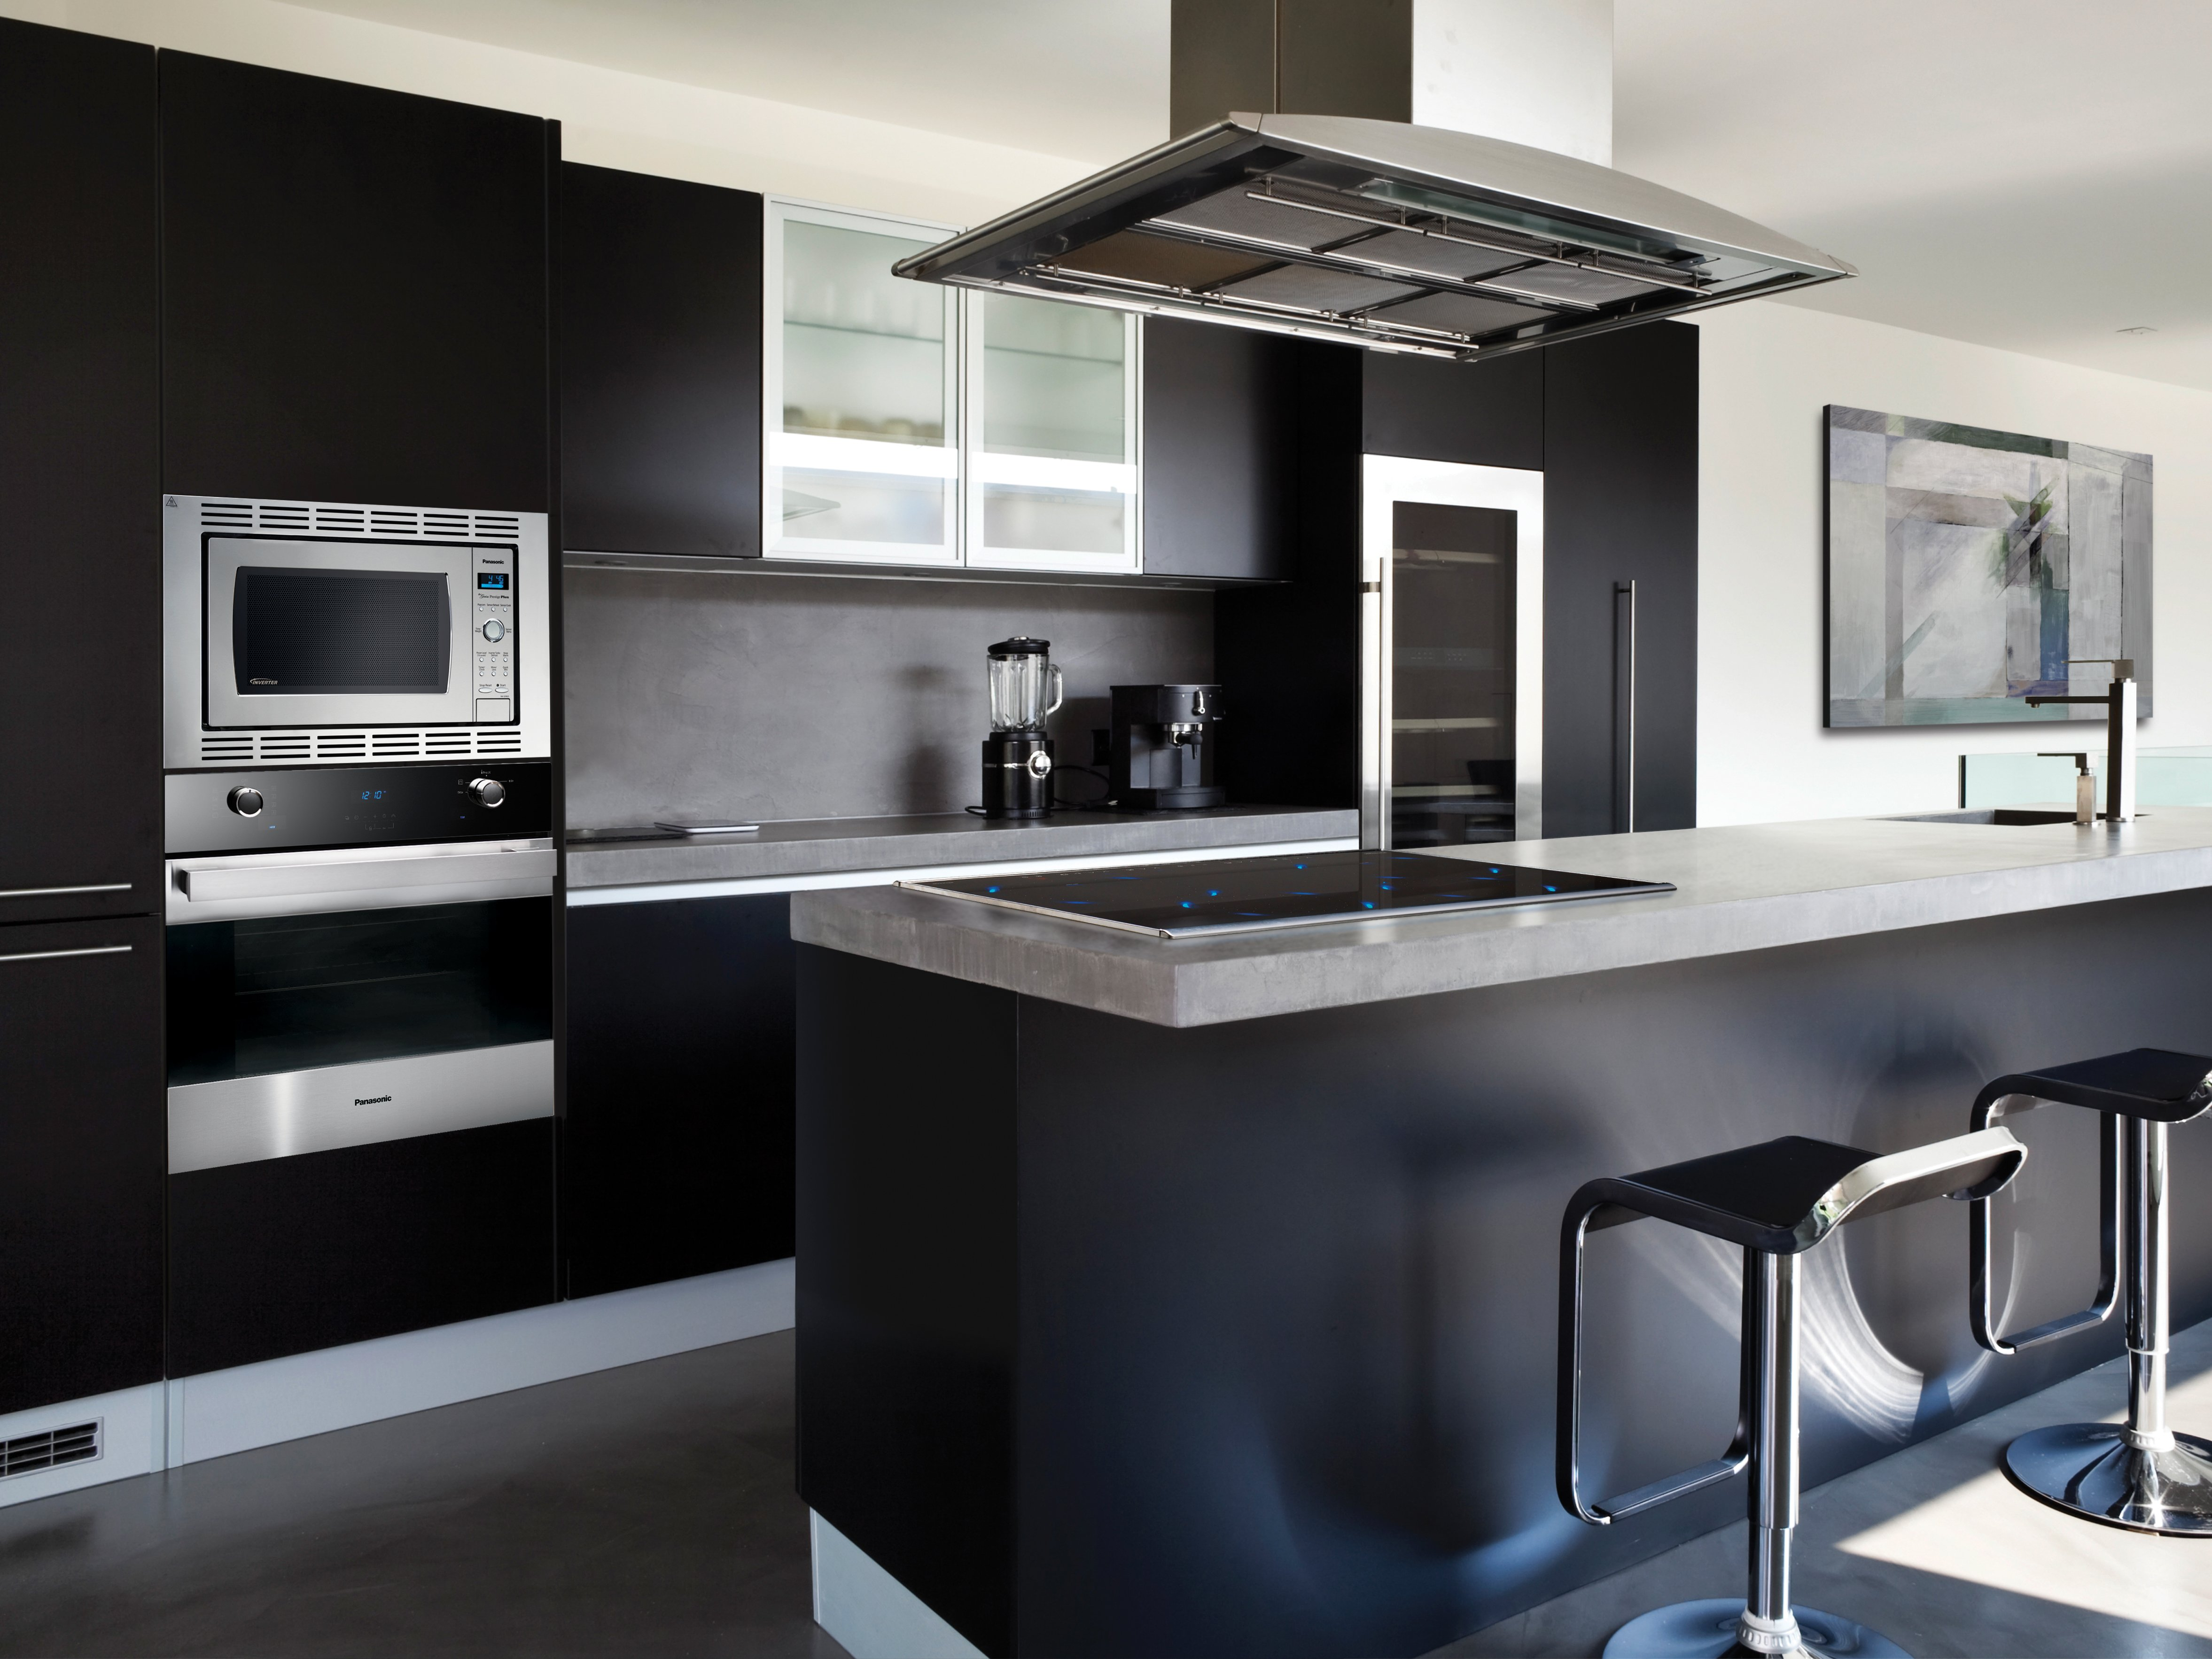 Black Modern Kitchen Interior Design photo - 7